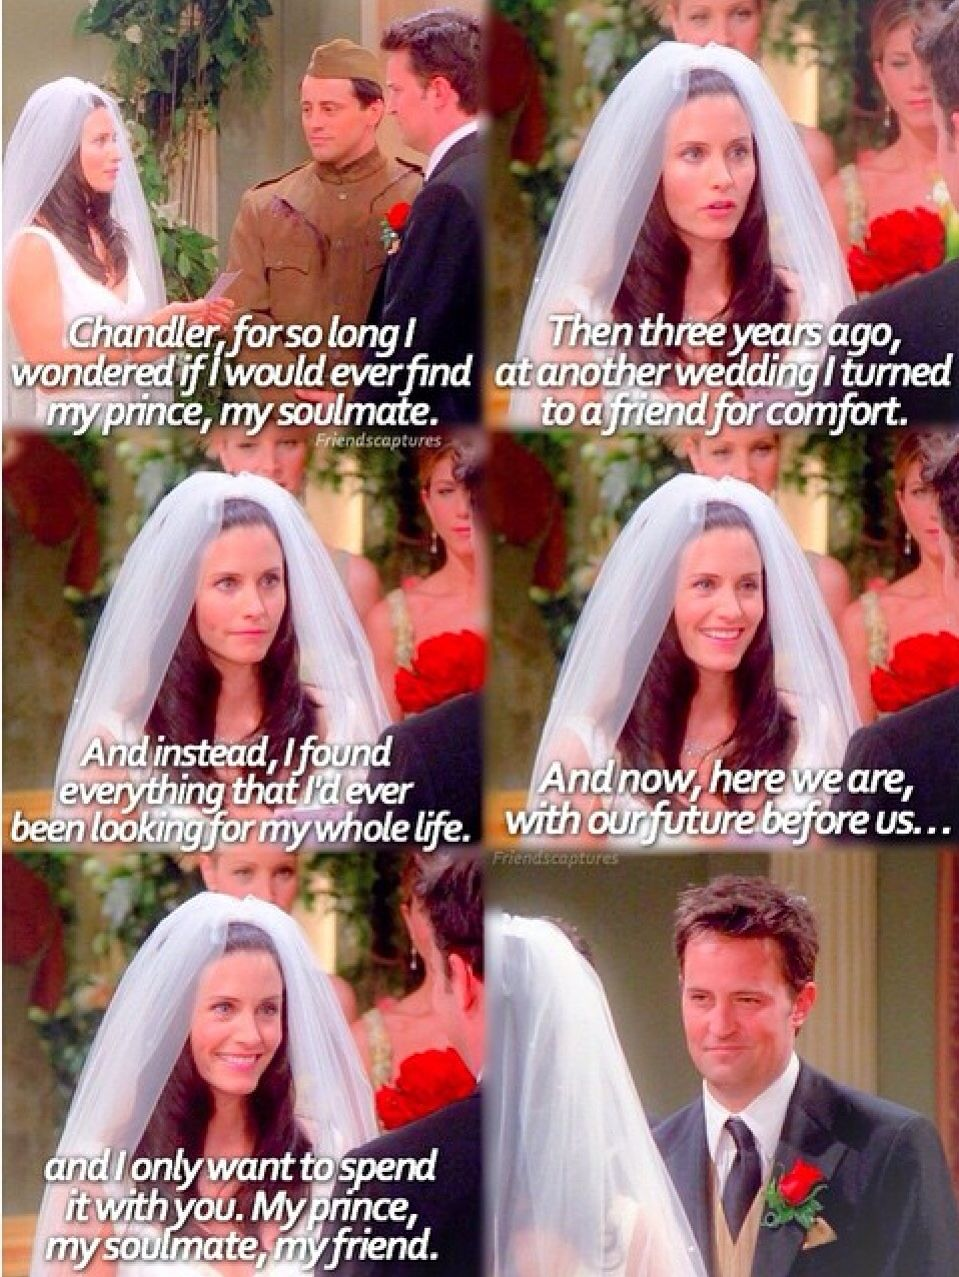 Pin by Jaimee King on Chandler and Monica | Friends tv quotes, Friends  episodes, Friends funny moments